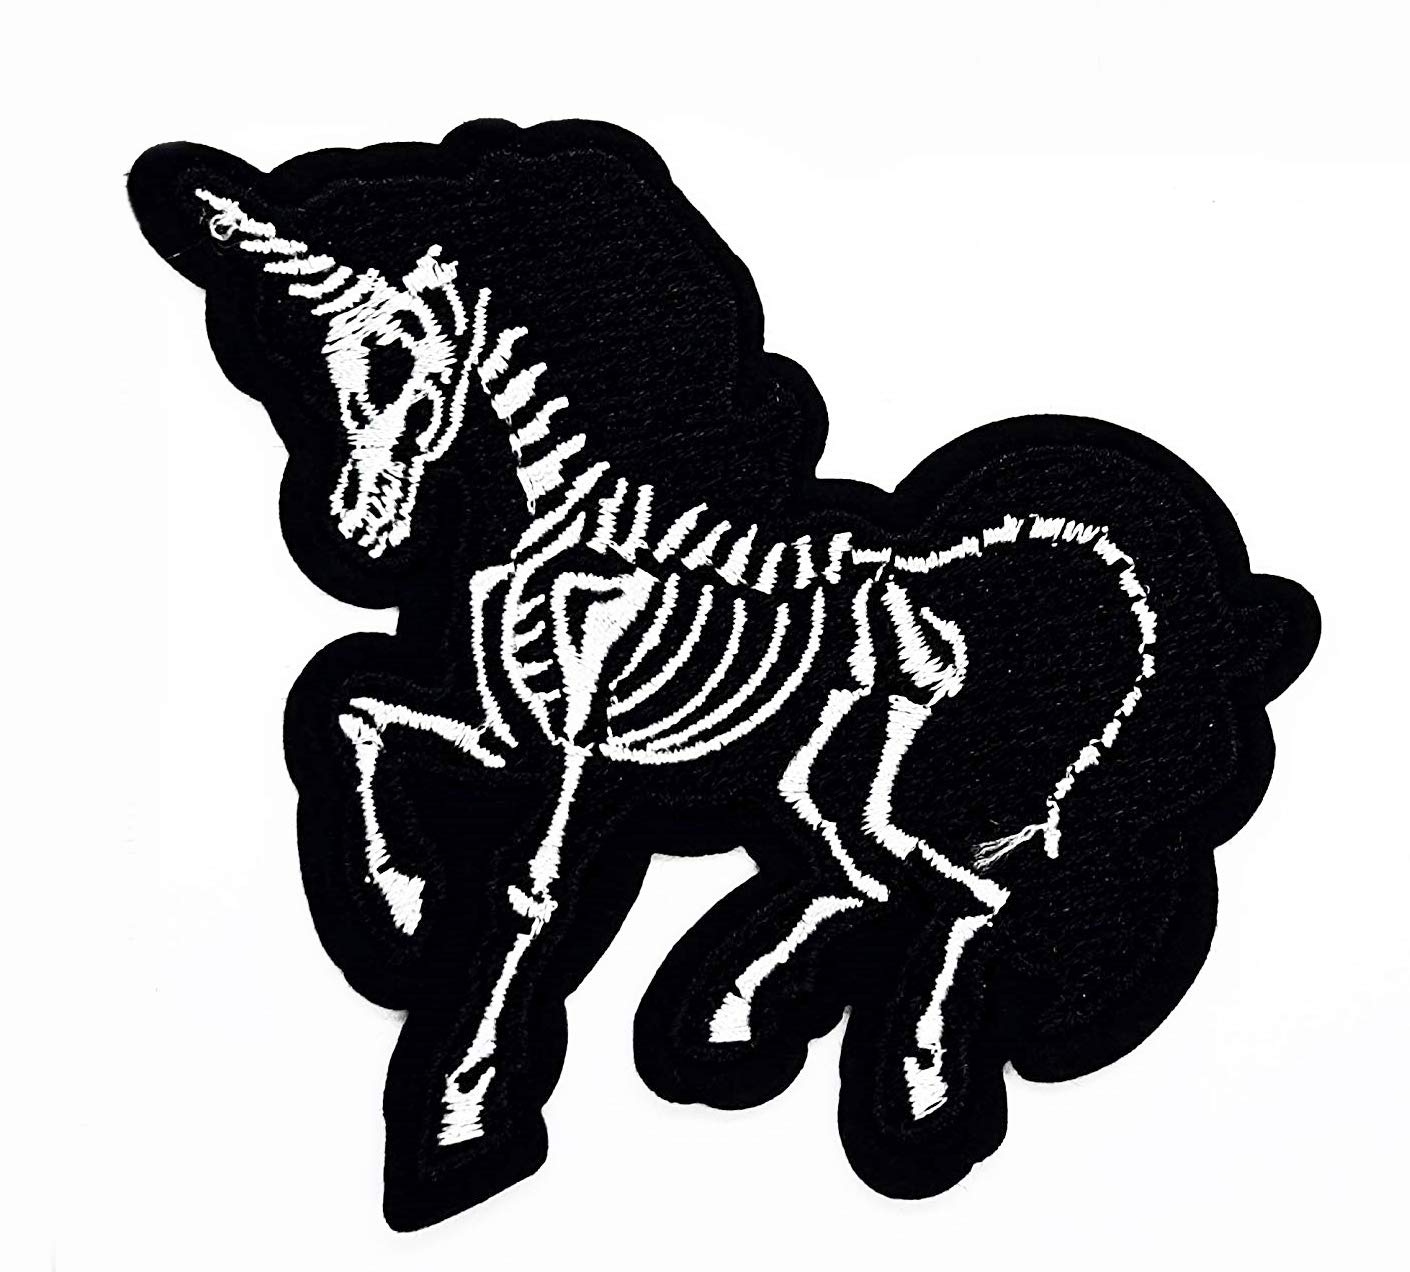 Skeleton Unicorn Horse Black Cartoon Chidren Kids Embroidren Iron Patch/Logo Sew On Patch Clothes Bag T-Shirt Jeans Biker Badge Applique Devil Artwork